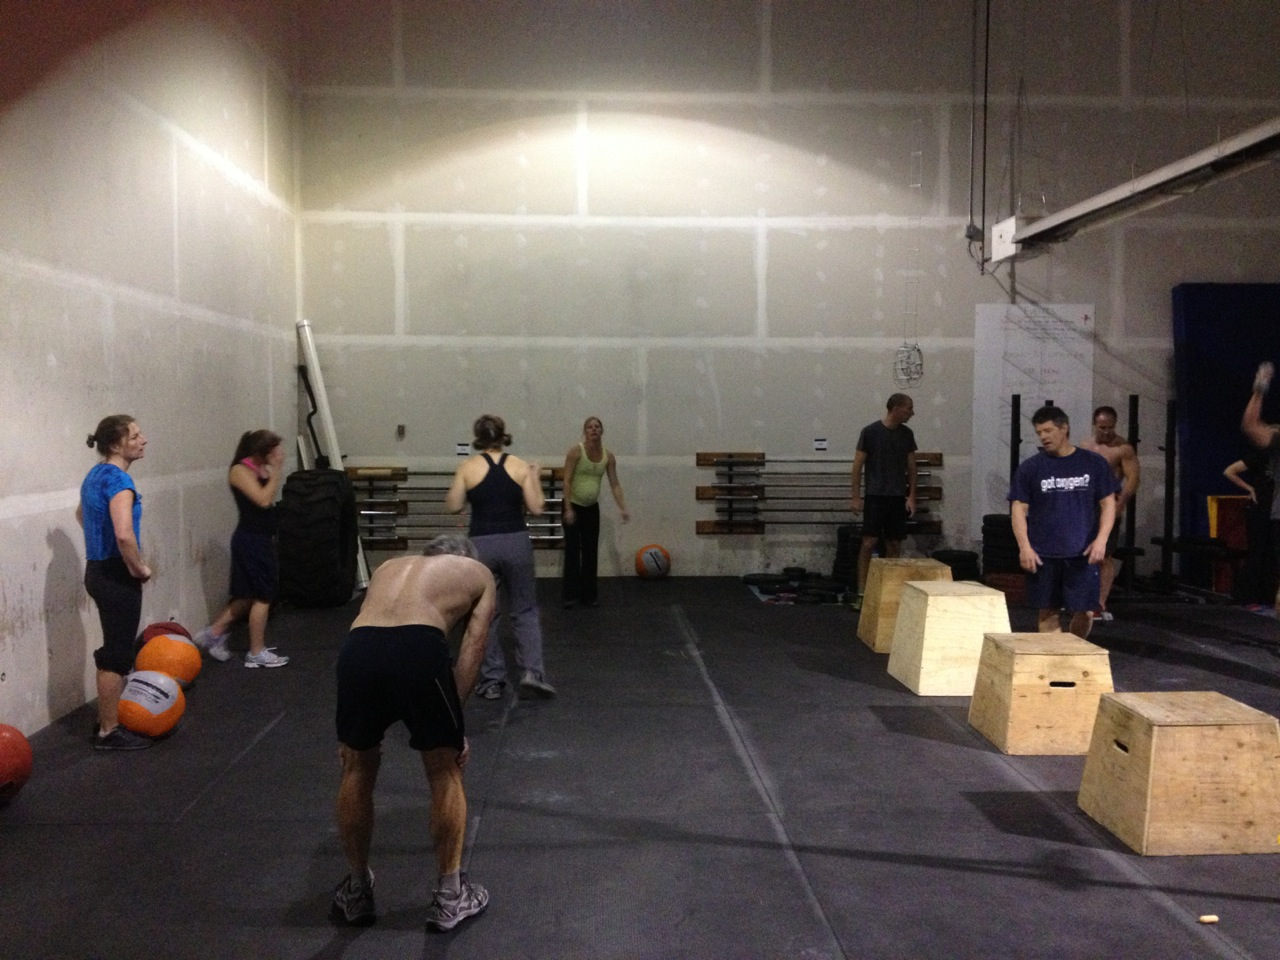 Look at all the fun we're having. Yay CrossFit!